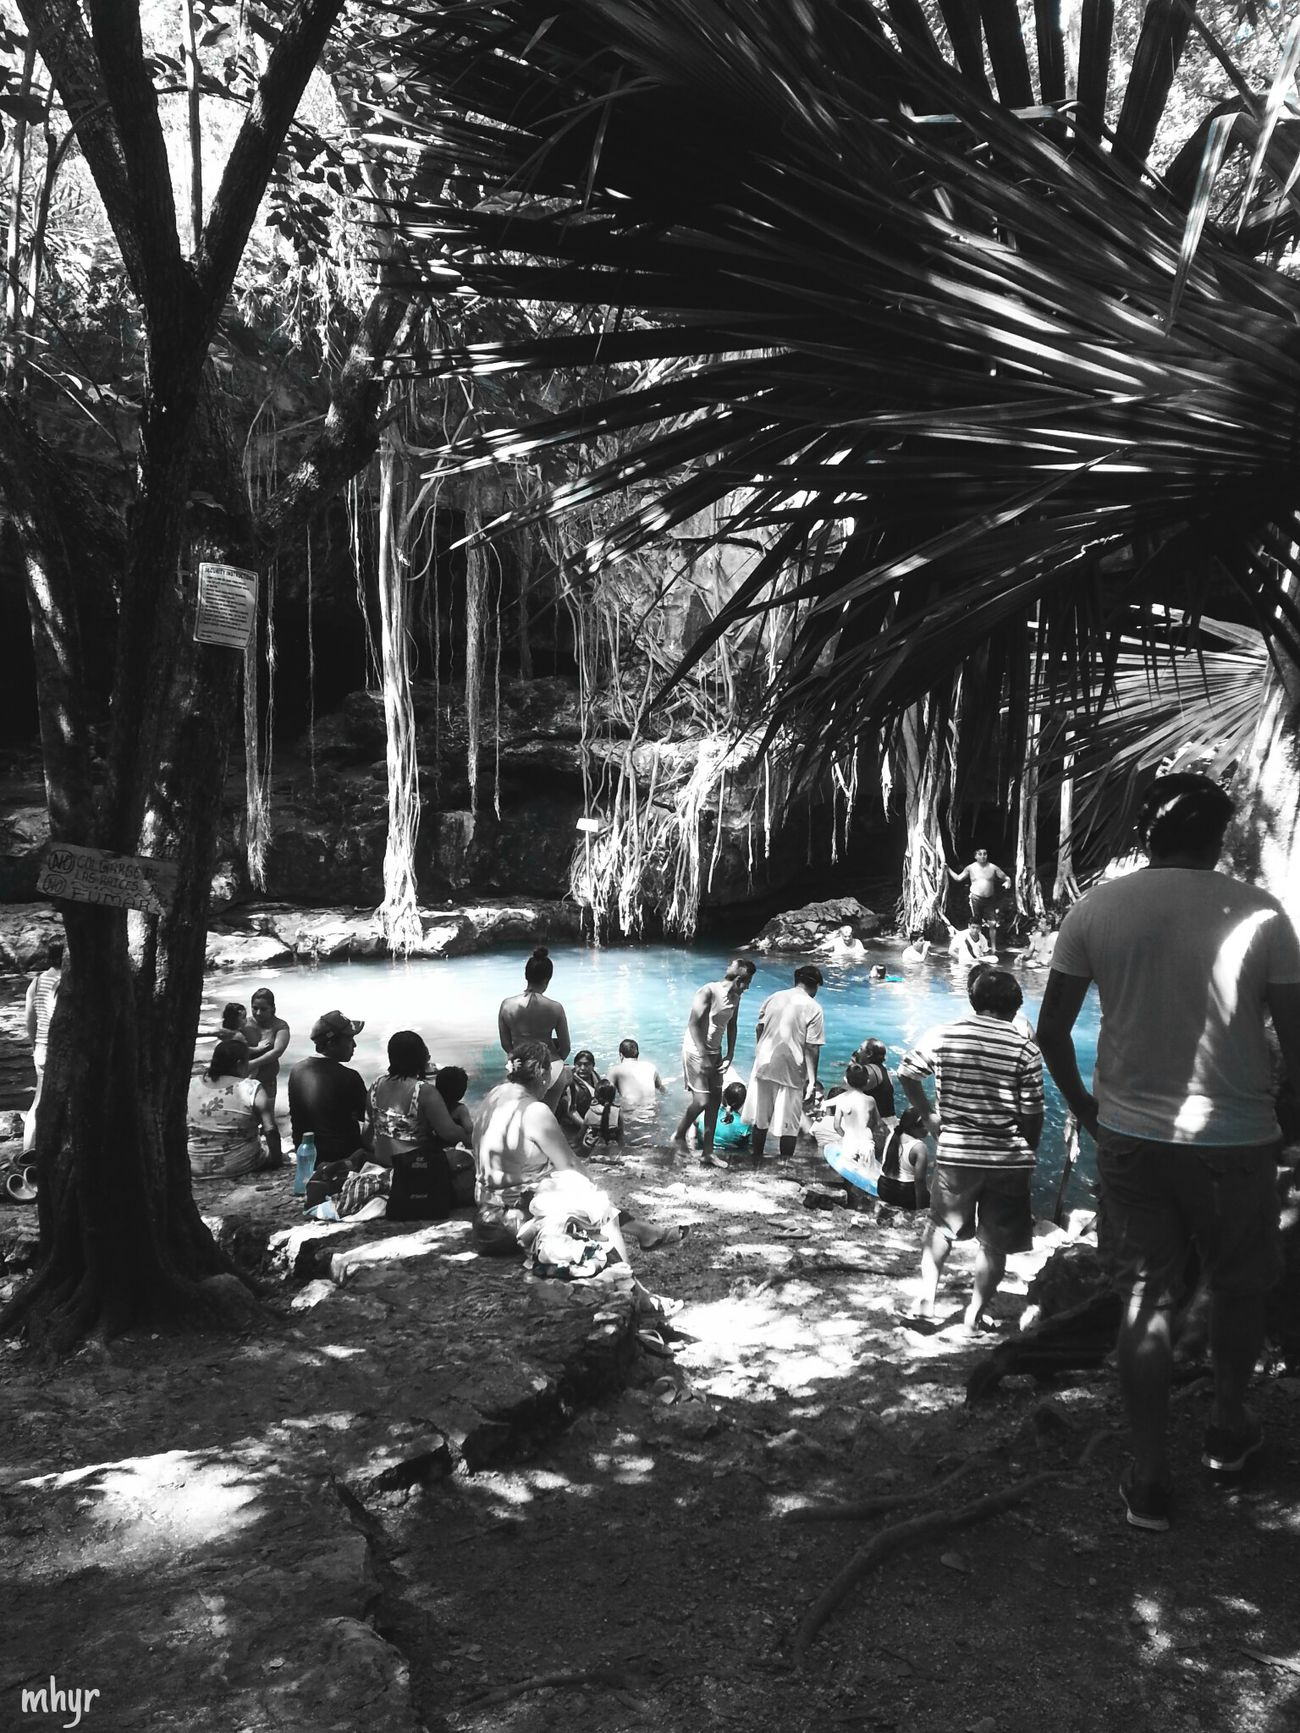 Nature Life Places Happiness Photography Colorsplash Lifestyles Relaxation People Waterhole Mexico Yúcatan Cenotes Day Large Group Of People Real People Nice Life Is Good Simple Life Best EyeEm Shot Picsart_family Plants 🌱 Beauty In Nature Picsartrefugees Naturelovers